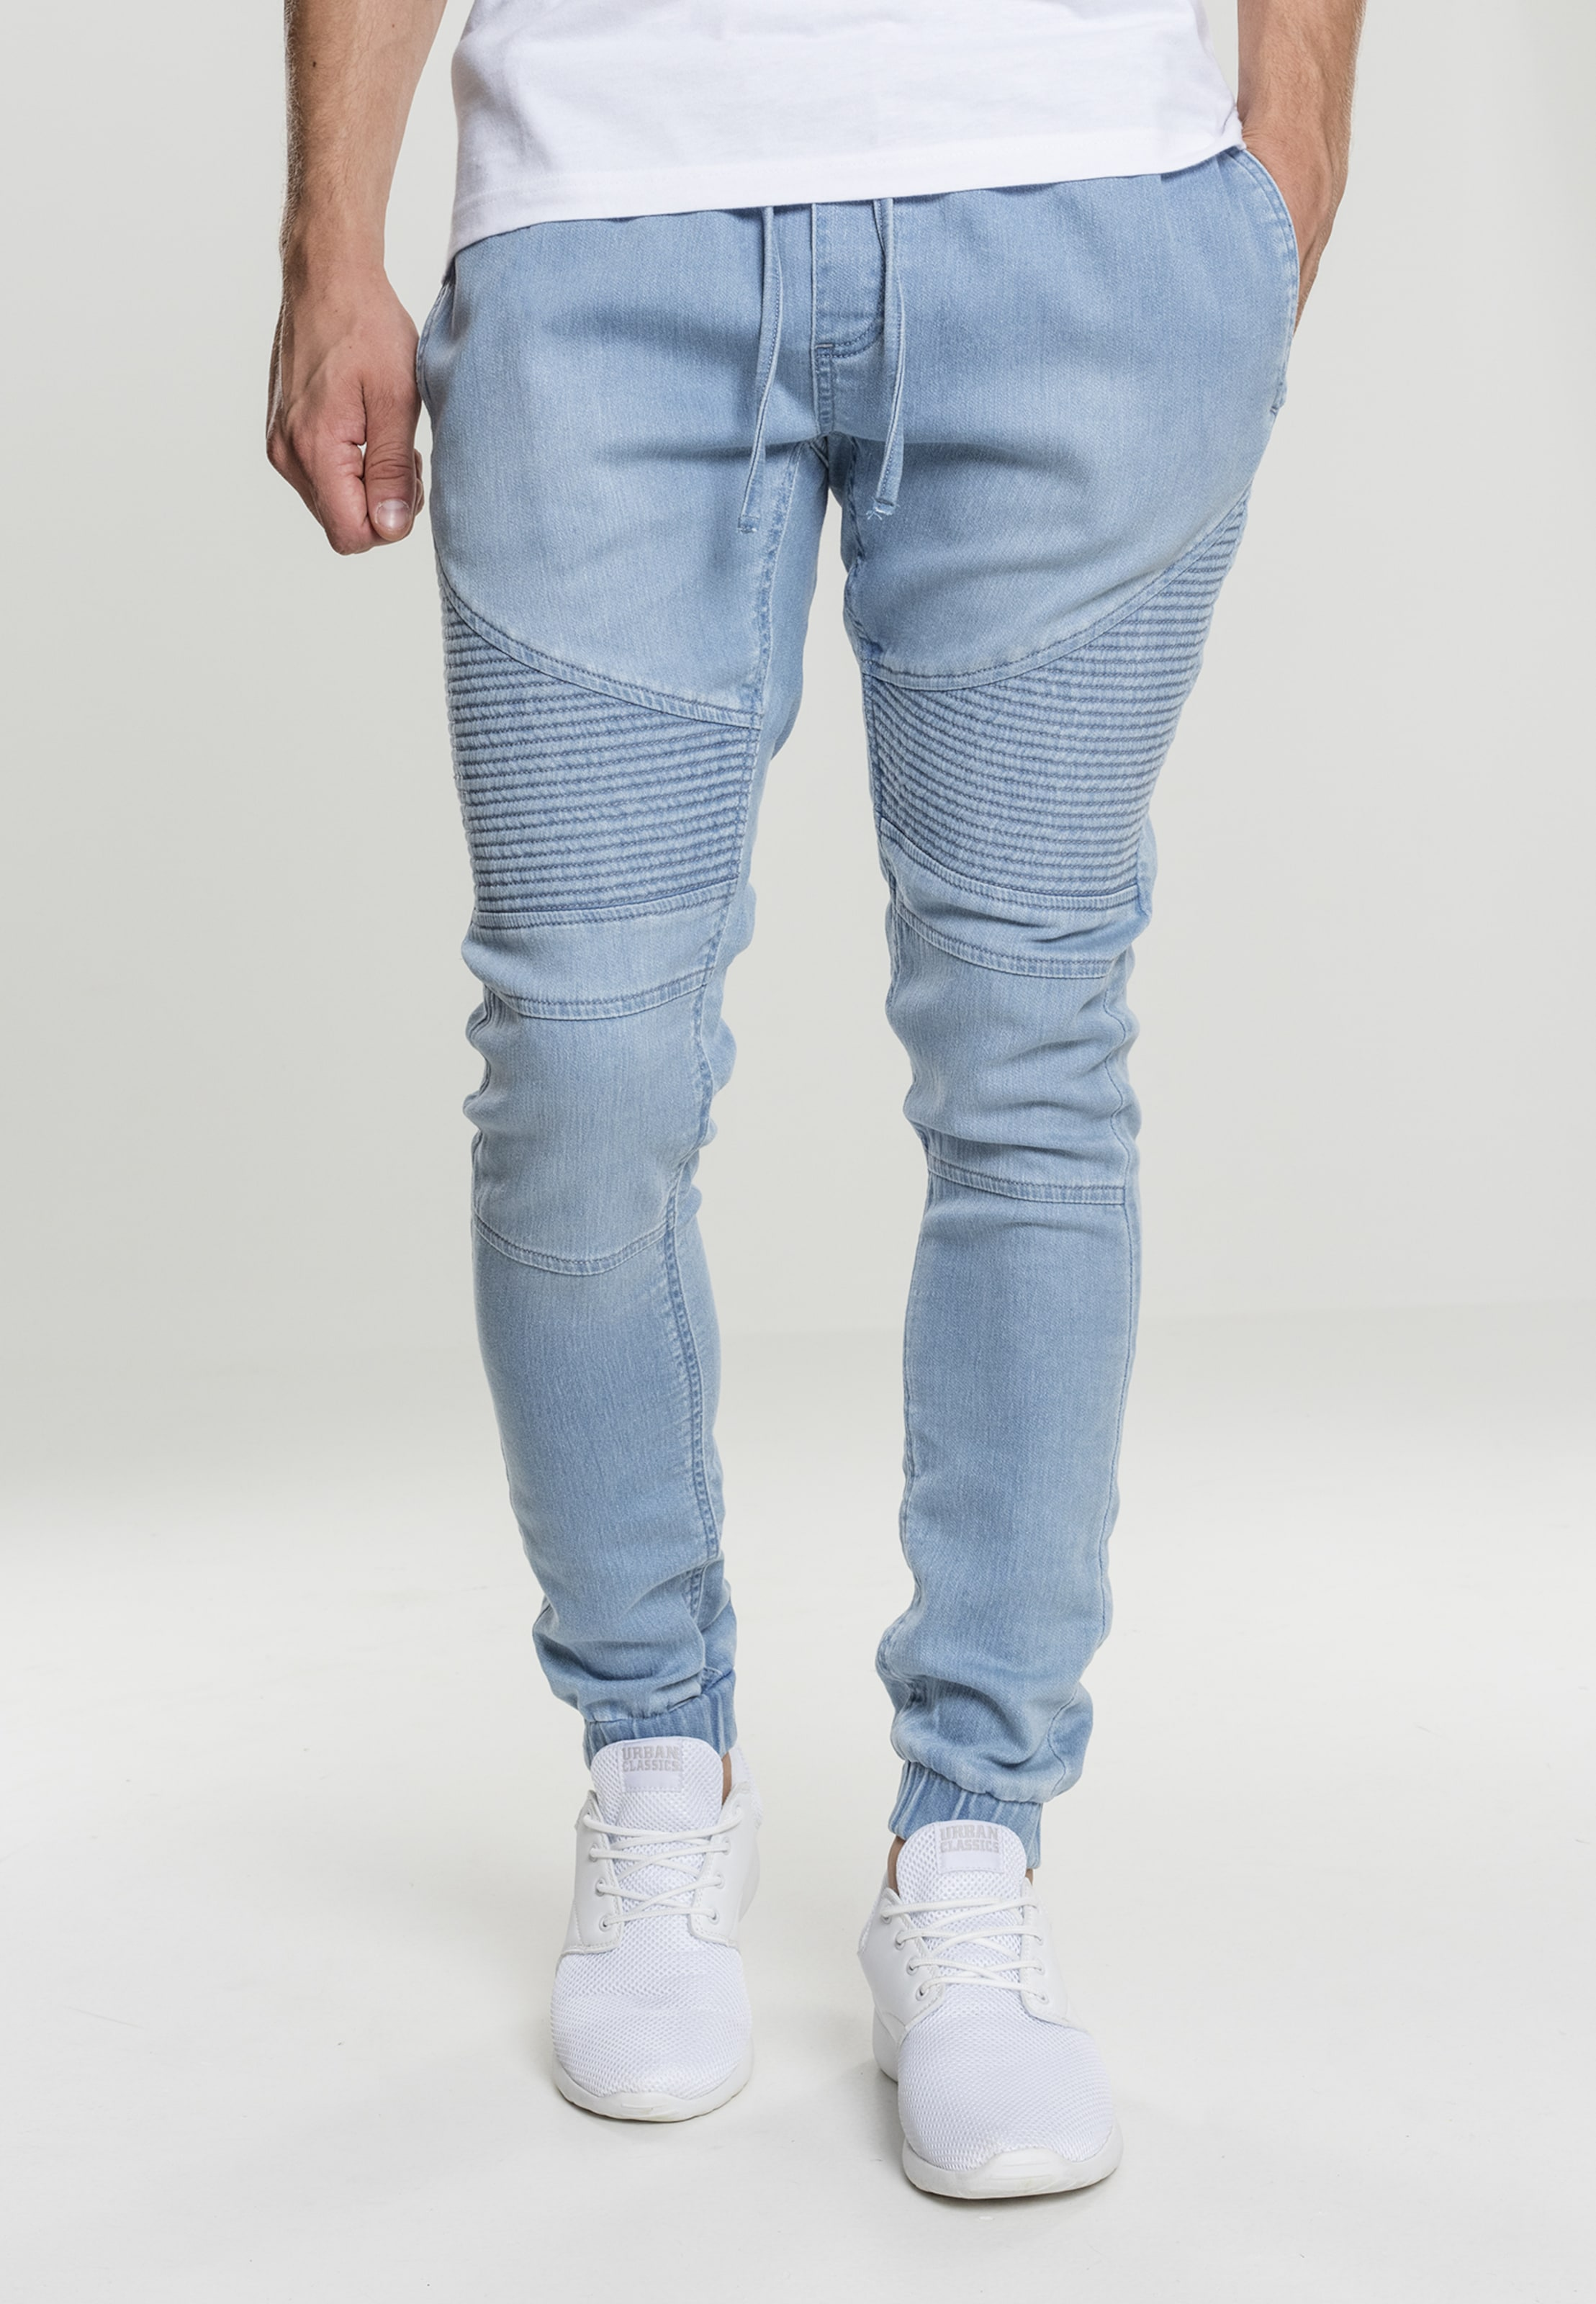 Urban 'biker' In Classics Denim Blue Sweatpants drhQBtsCx